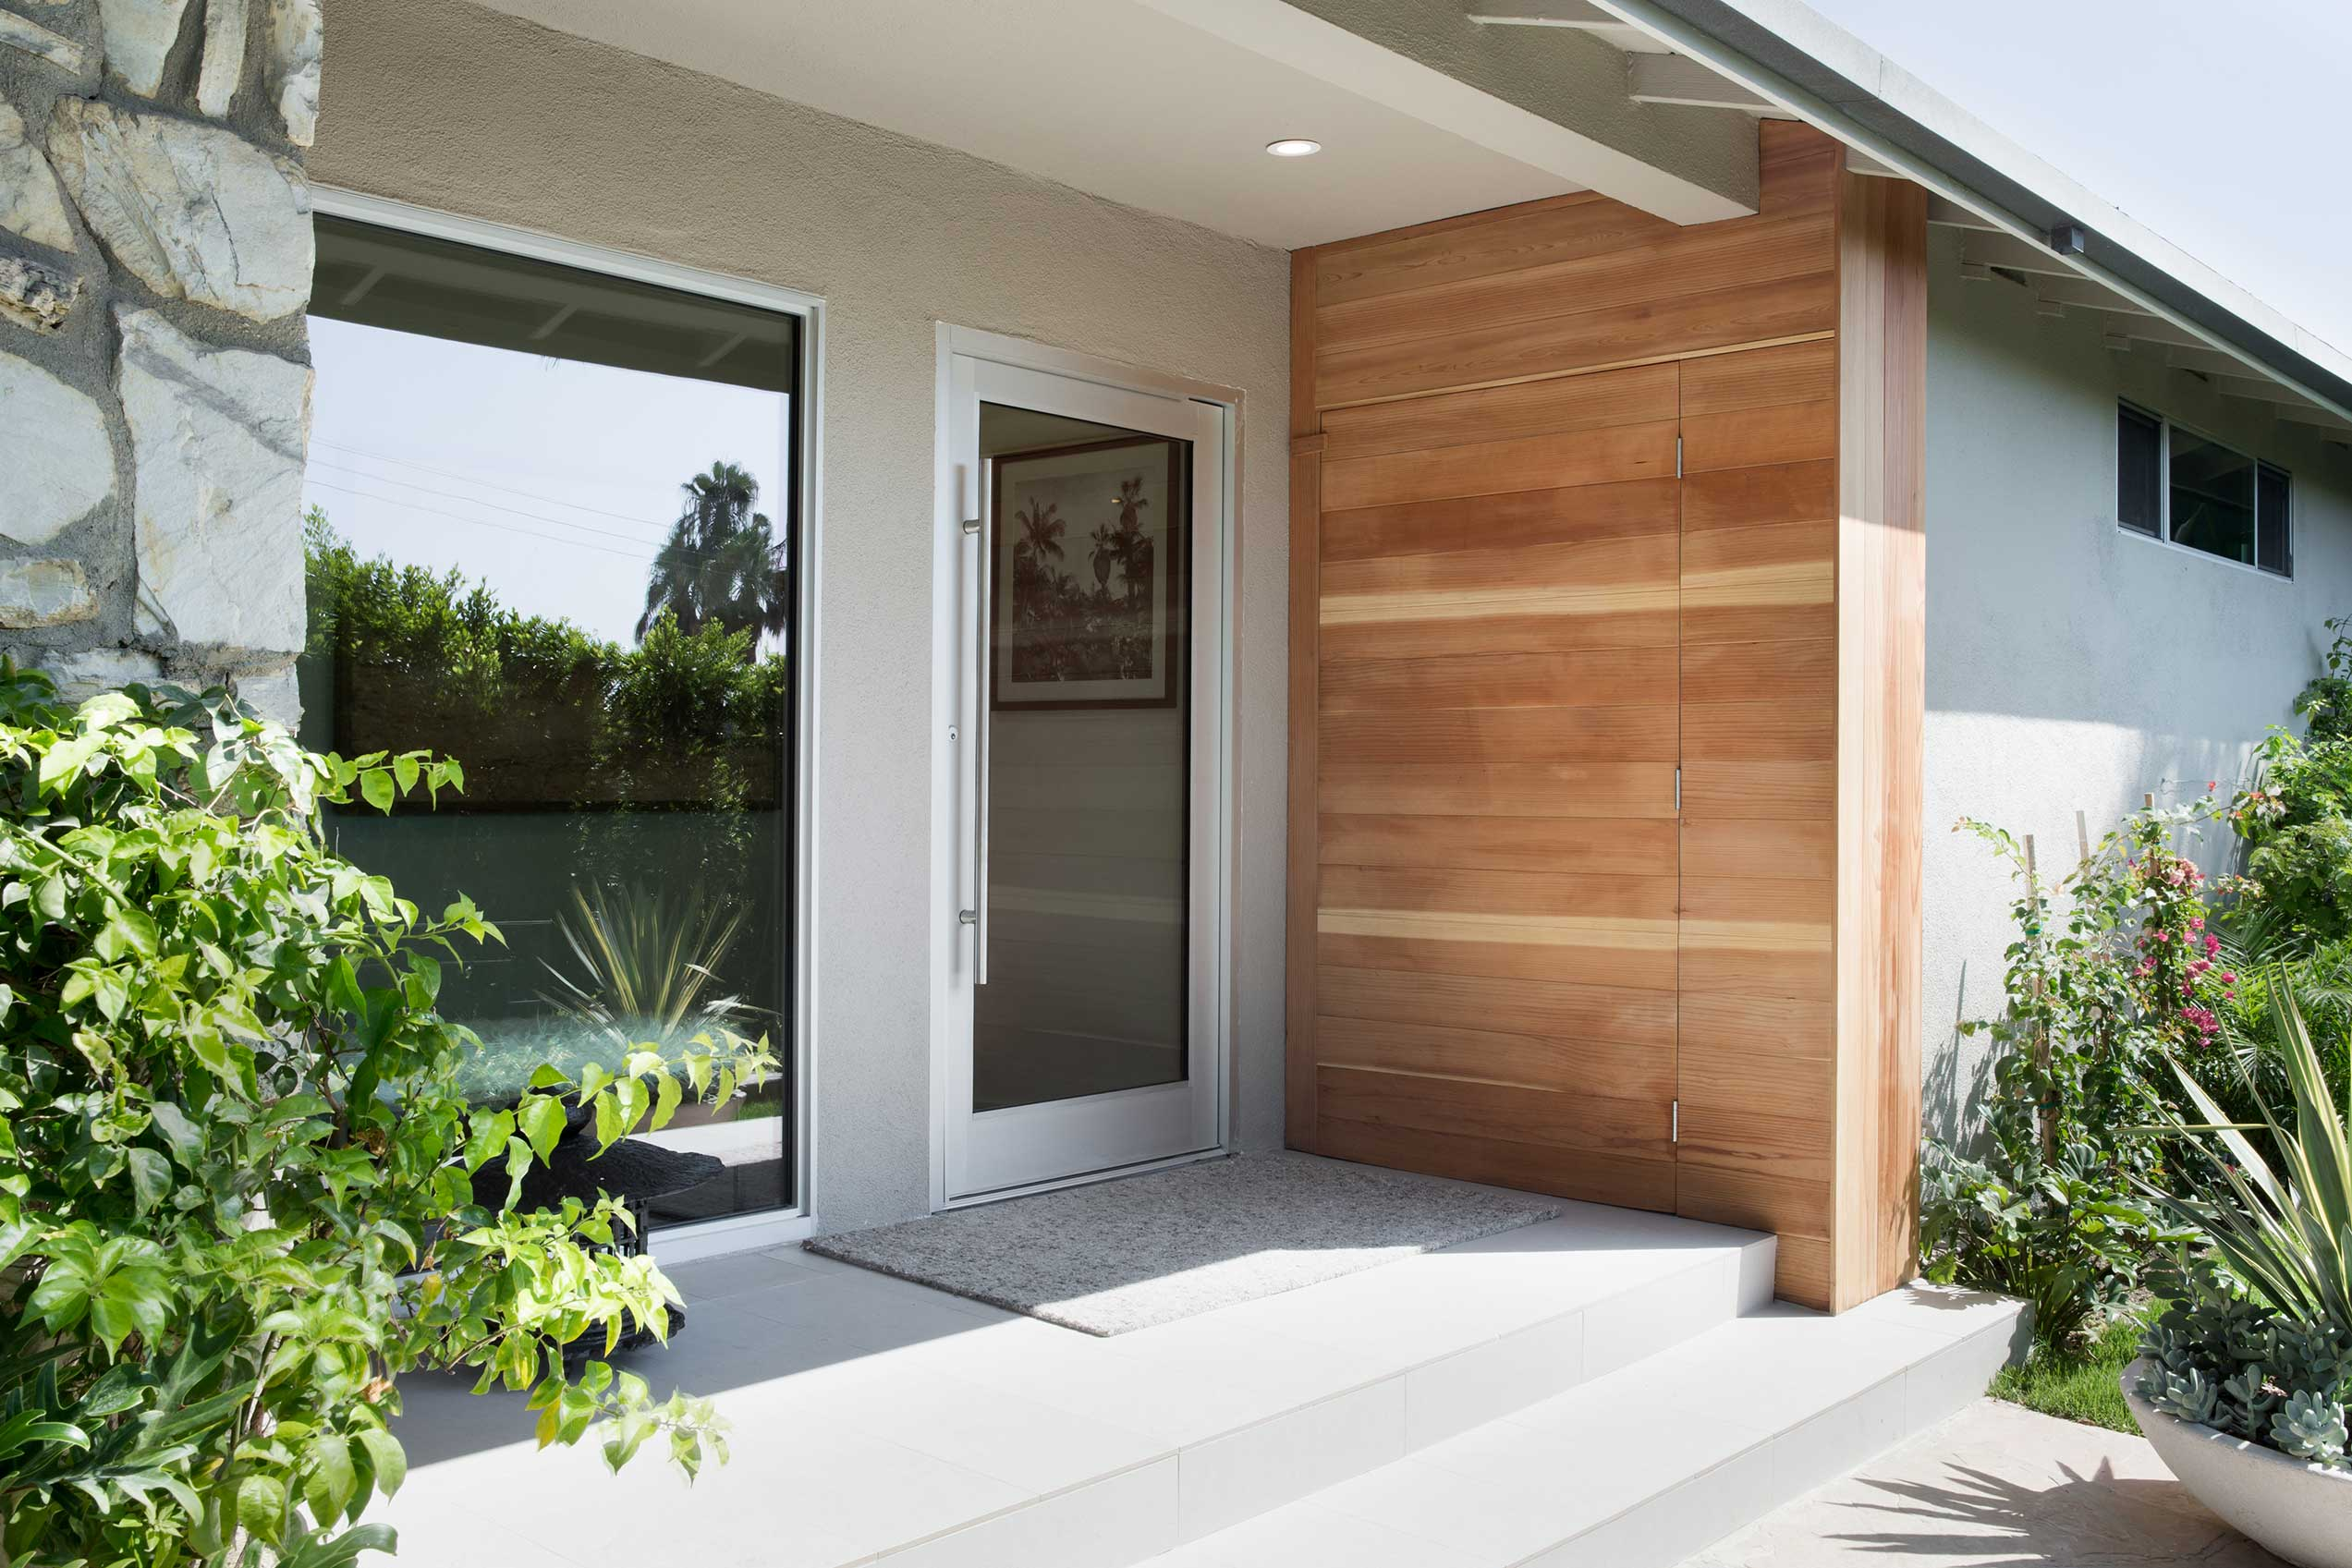 The front of the house is as beautiful as the back, with this pivot door and large fixed window.